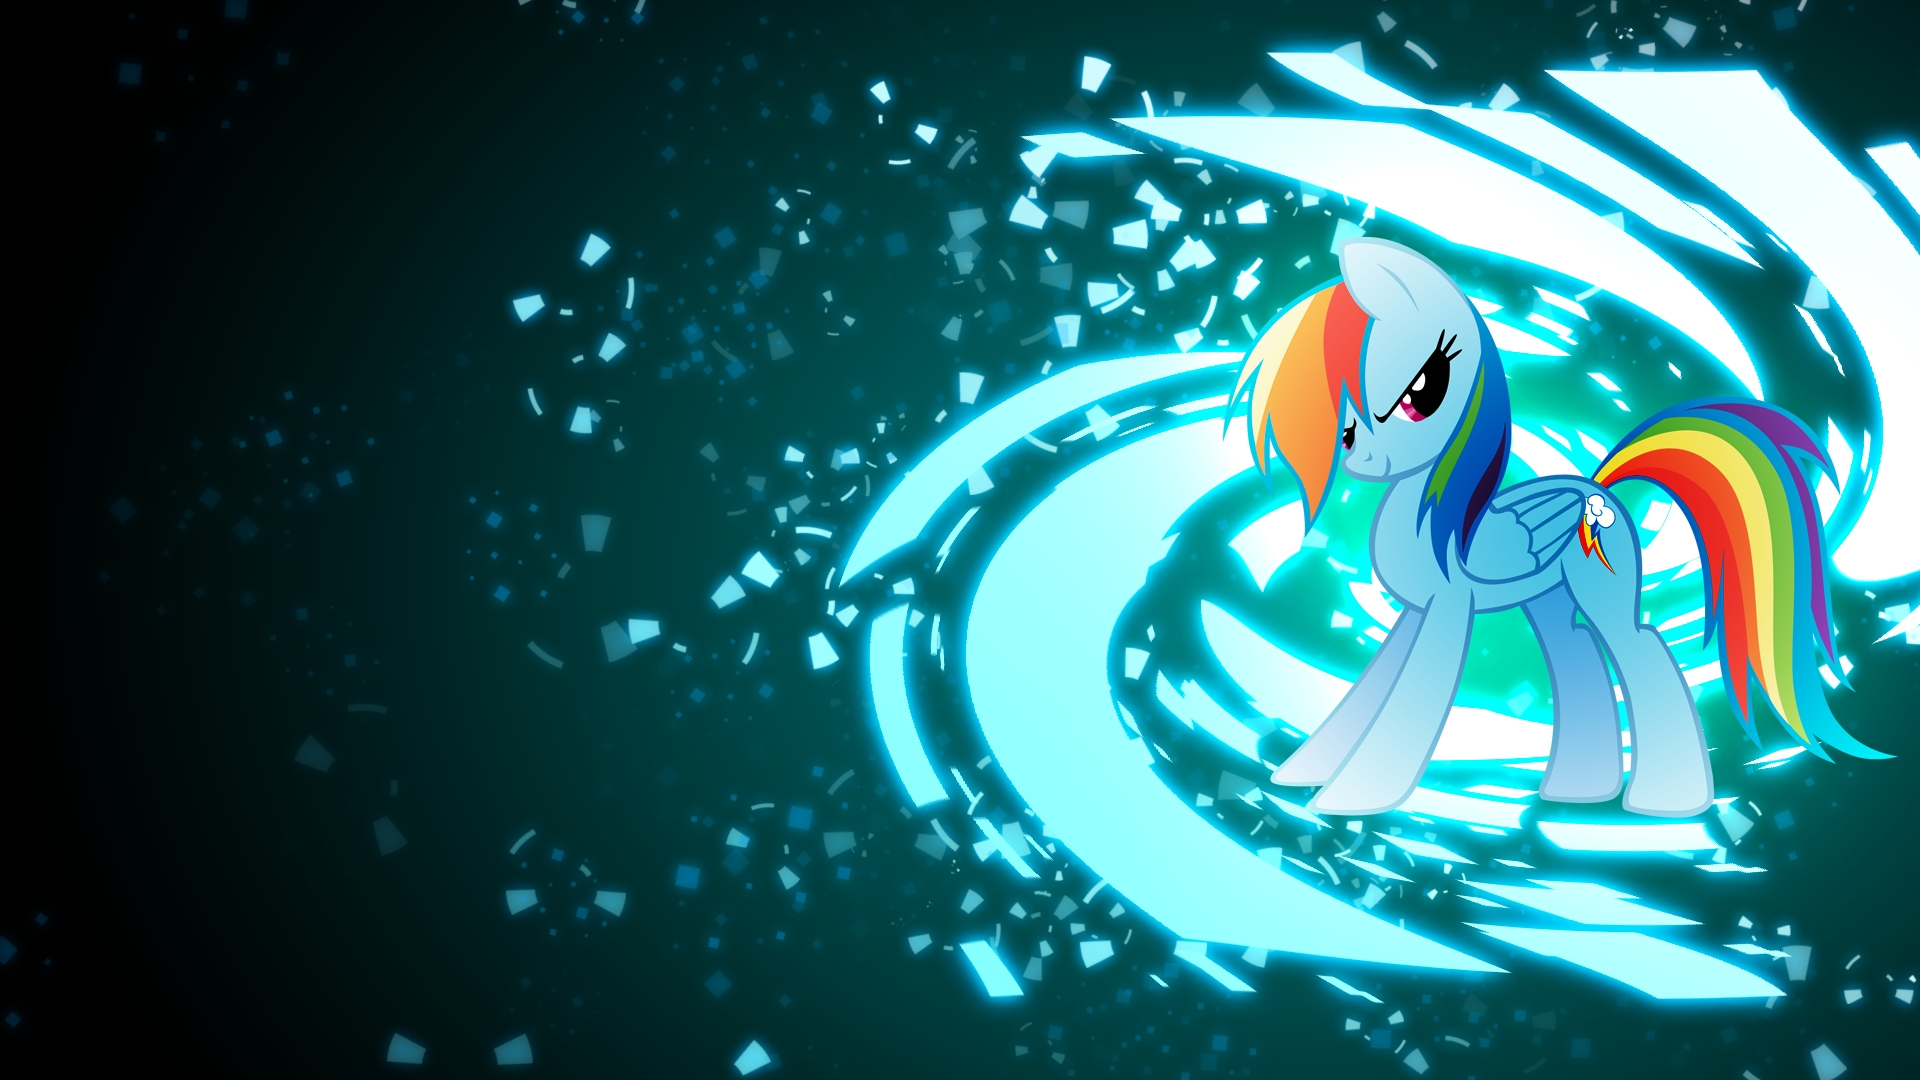 rainbow dash wallpaper ver.3 full hd fond d'écran and arrière-plan